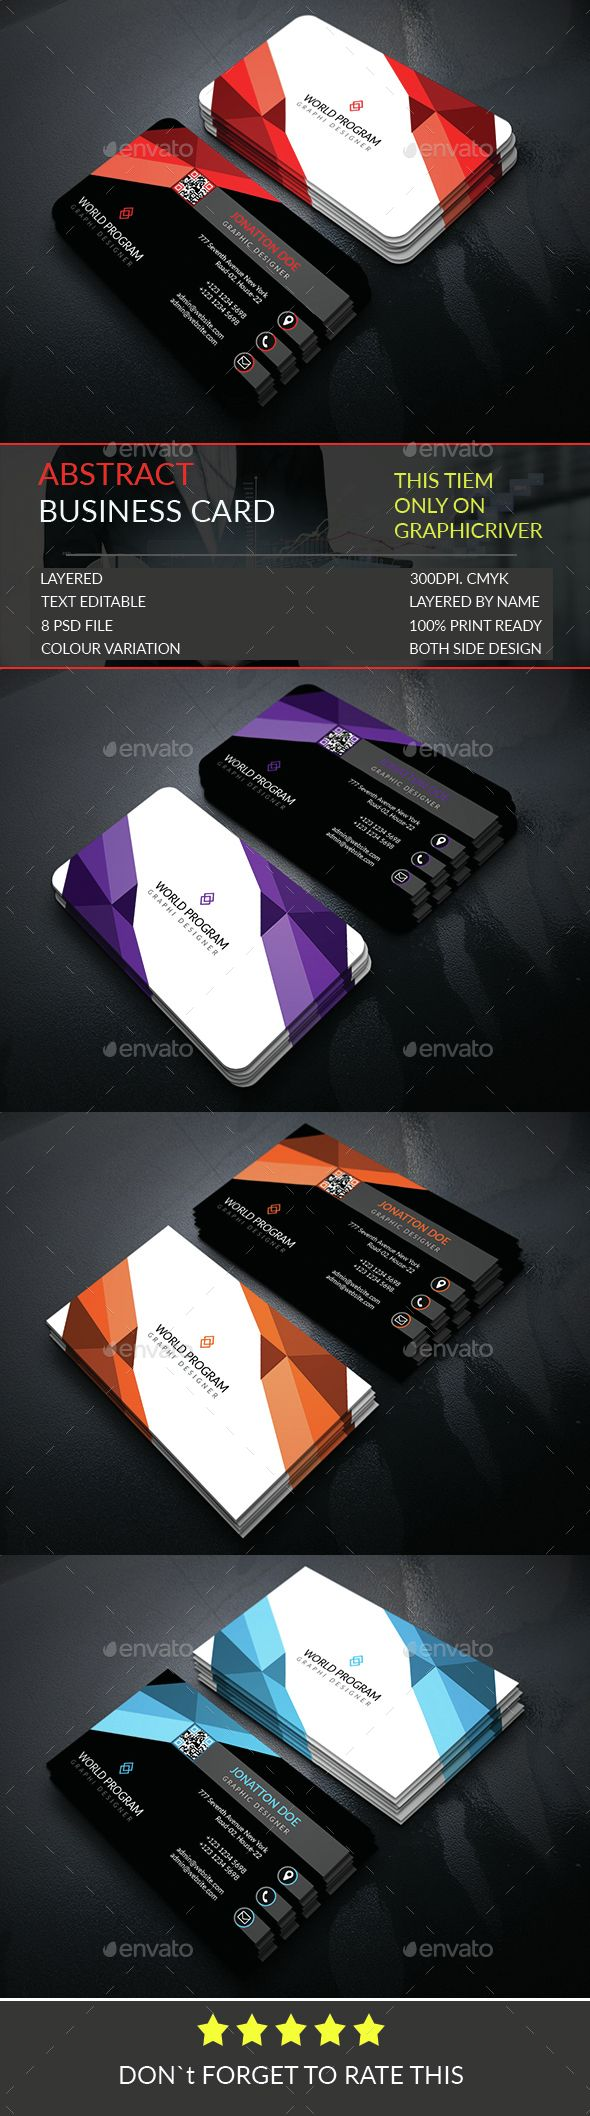 Abstract Business Card Template | Card templates, Business cards and ...